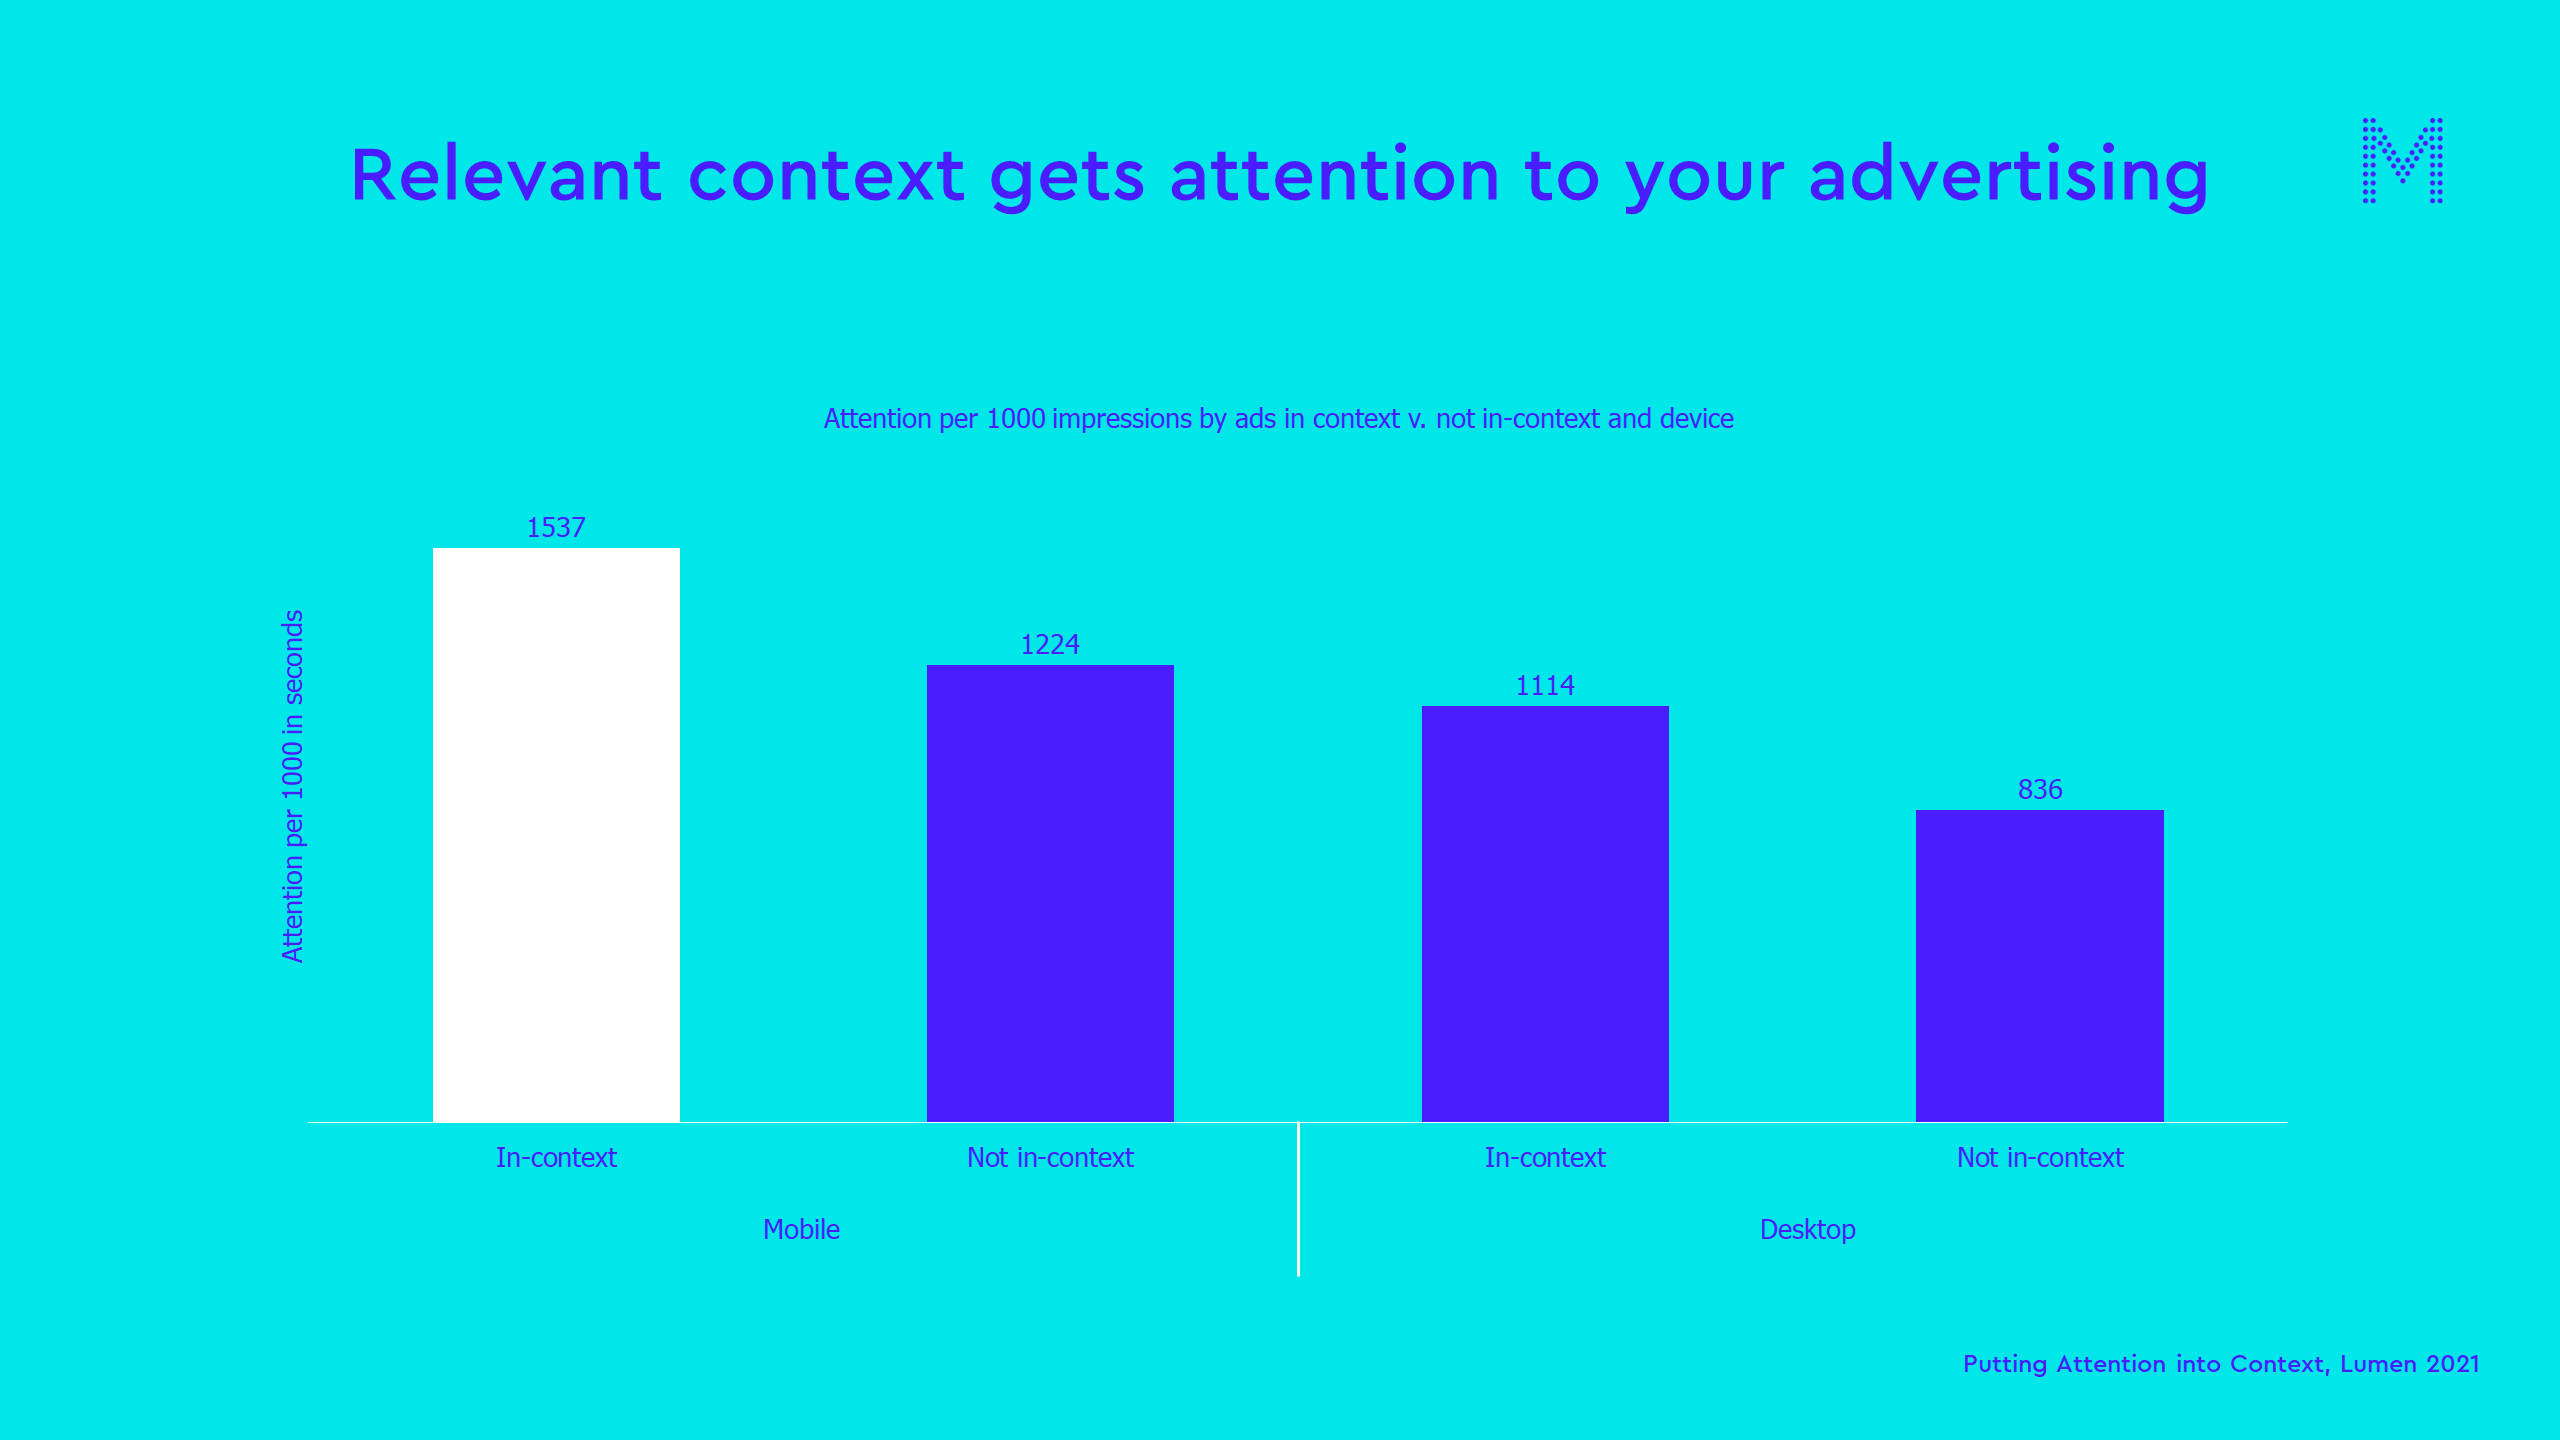 Relevant context gets attention to your advertising